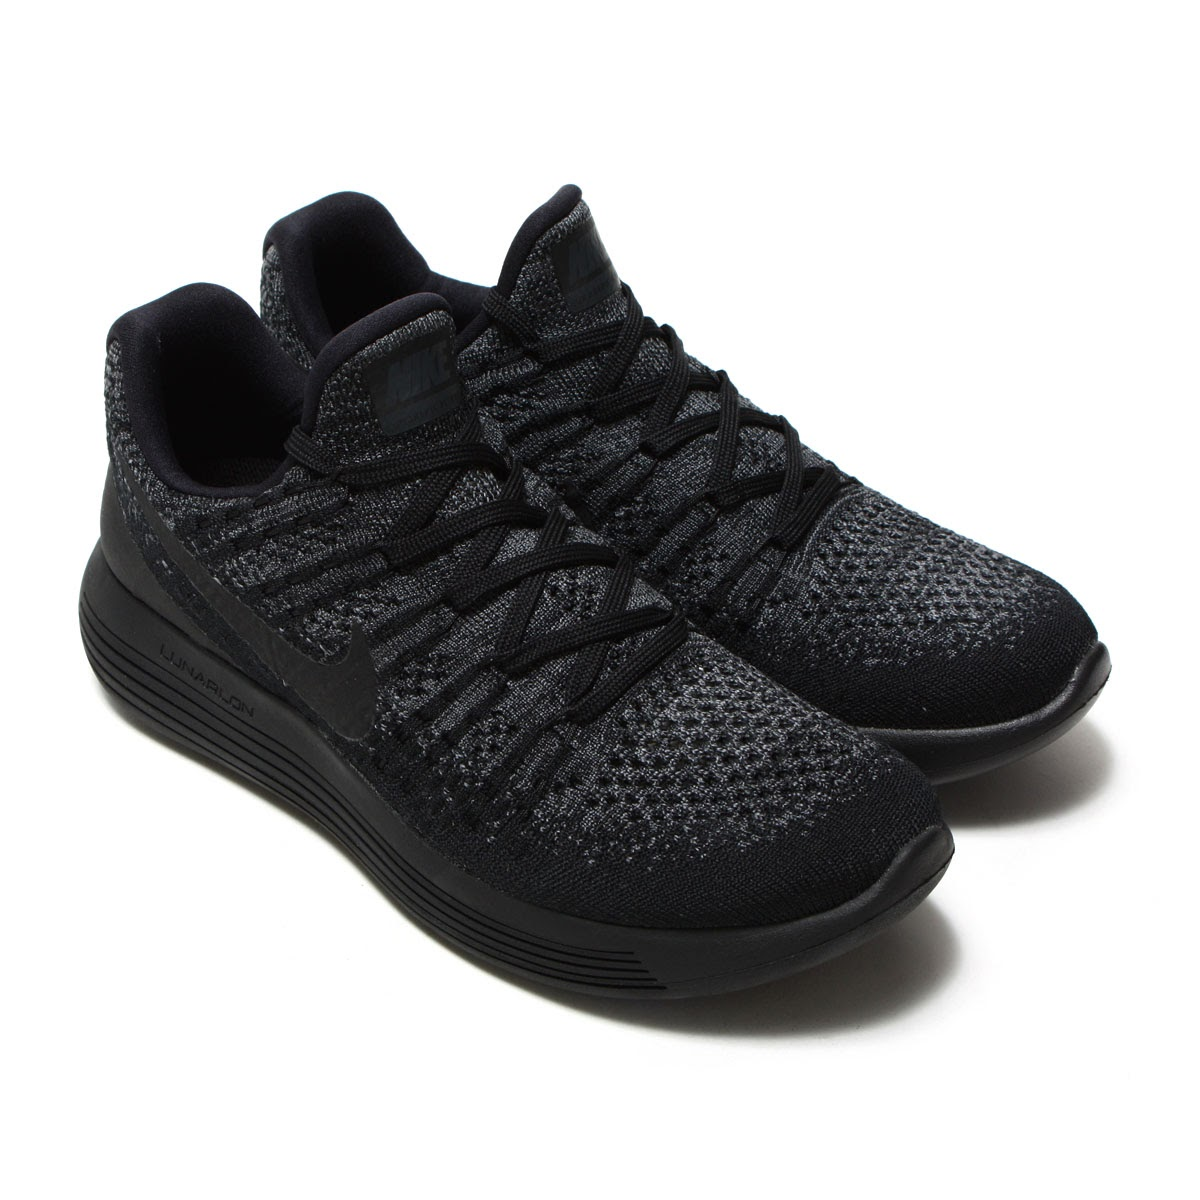 4f7d17f7f13ed The shoes that comfort lasts from the moment when I wore Nike women luna  epic LOW fly knit 2. I adopt Flyknit booties without the joint and gentle  Lunarlon ...